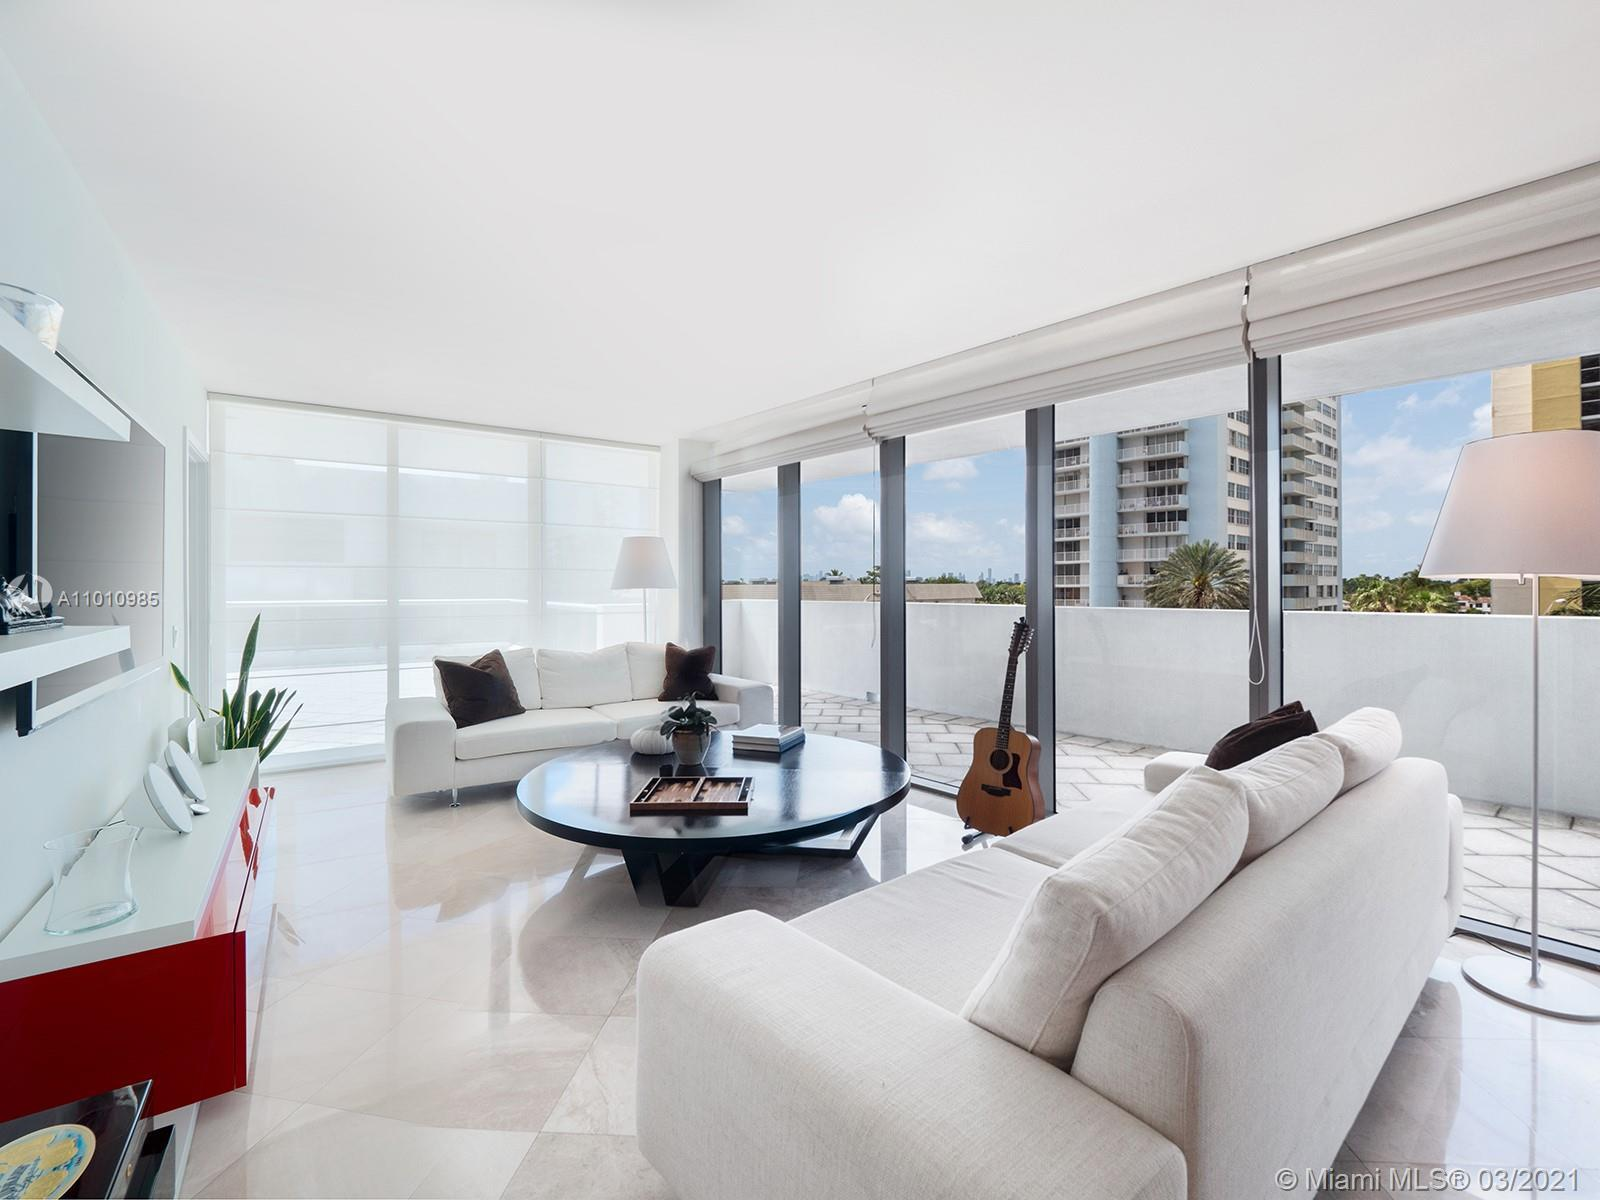 Entertain in style and ease in this corner unit pied-a-terre at Mei Miami Beach, on its spectacular